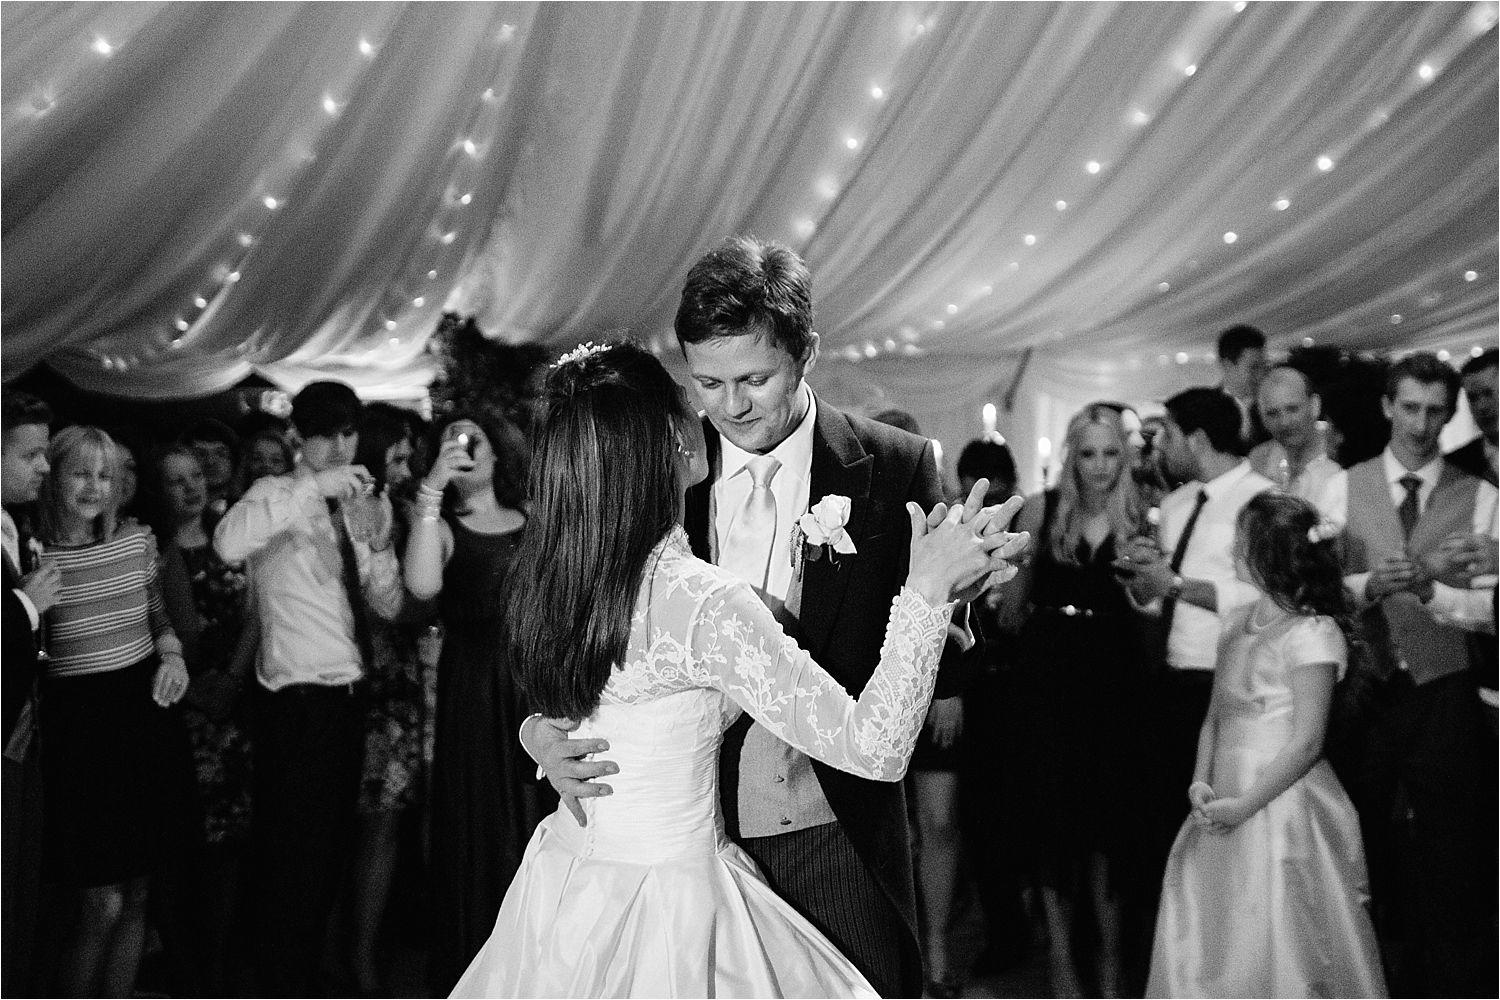 First dance for bride and groom at their Cheshire wedding